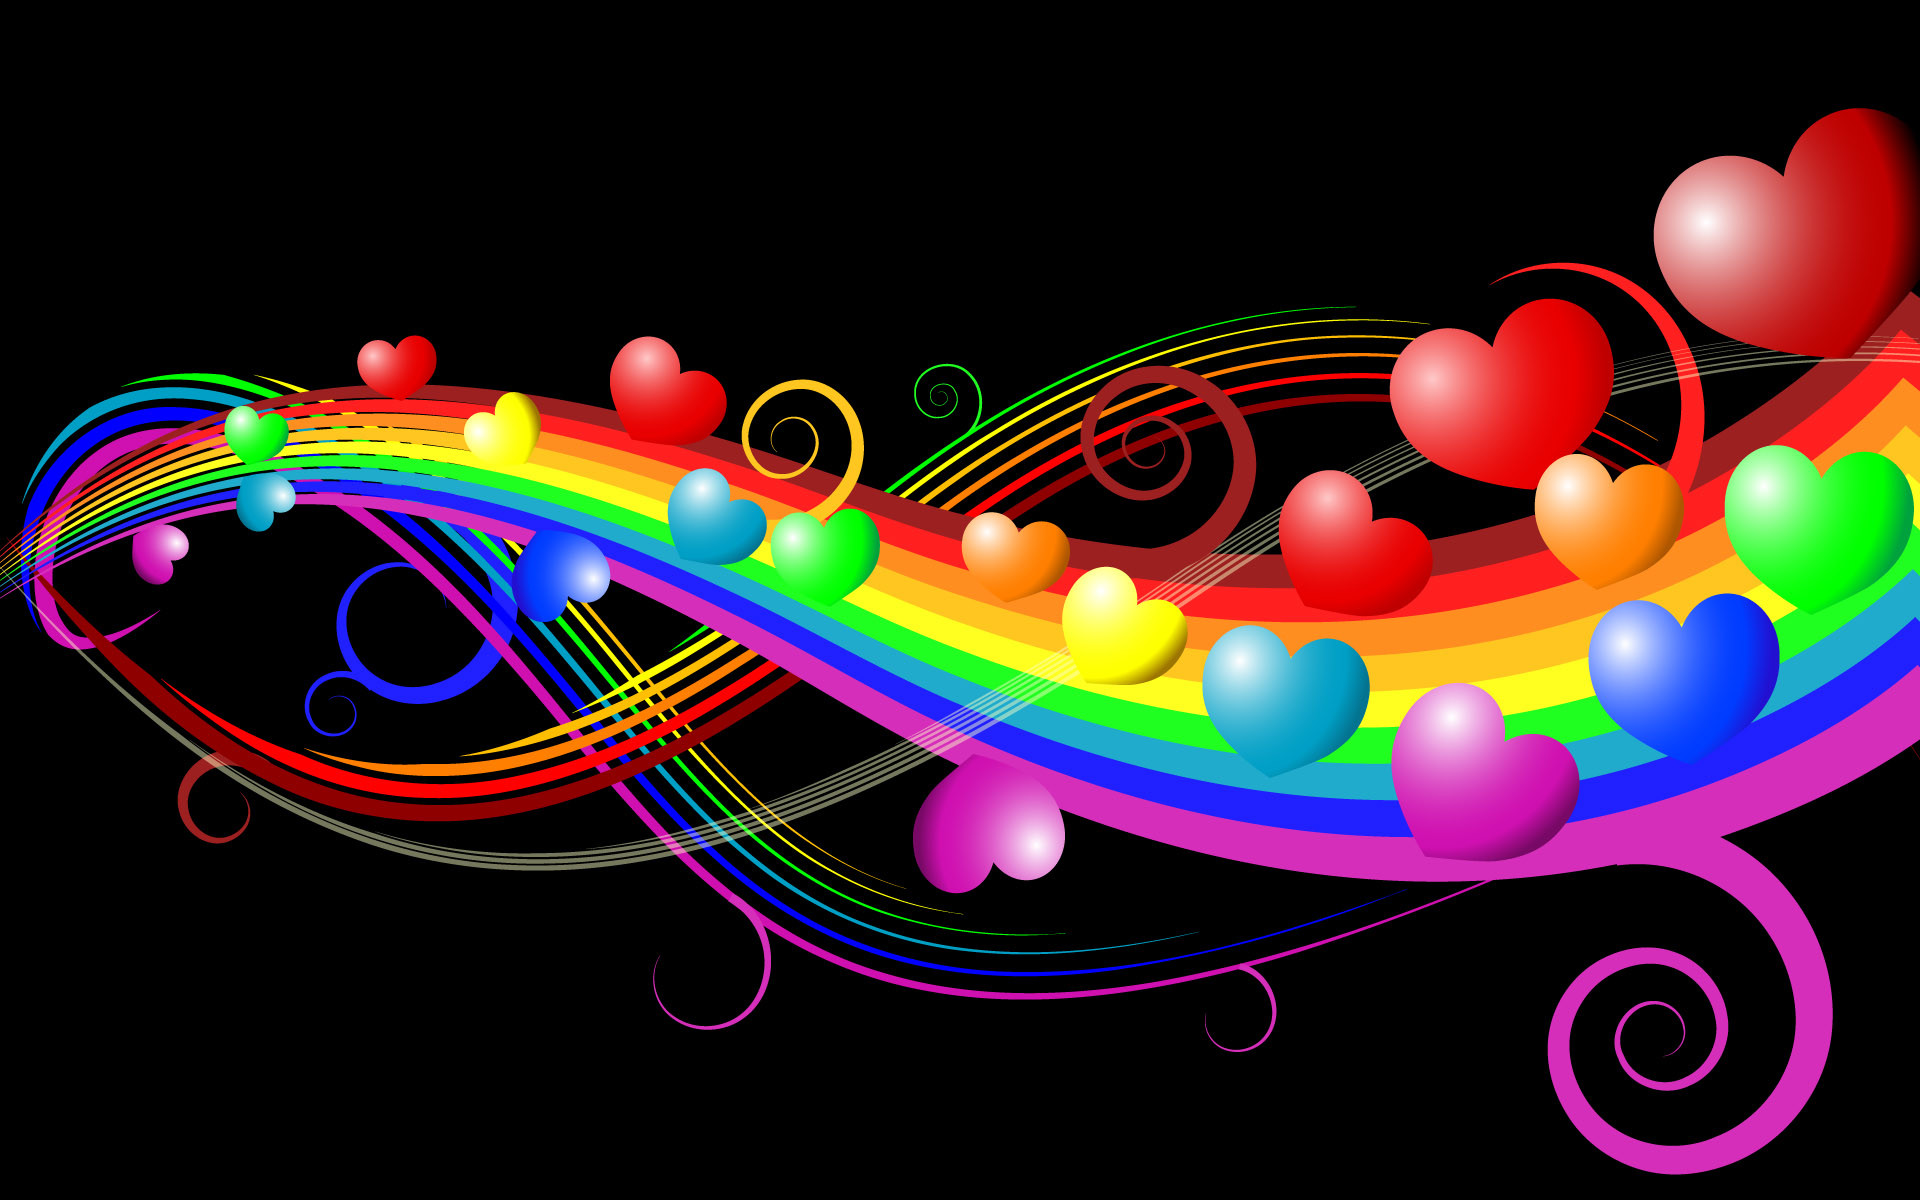 1920x1200 Colorful Hearts Wallpaper For Android #teO